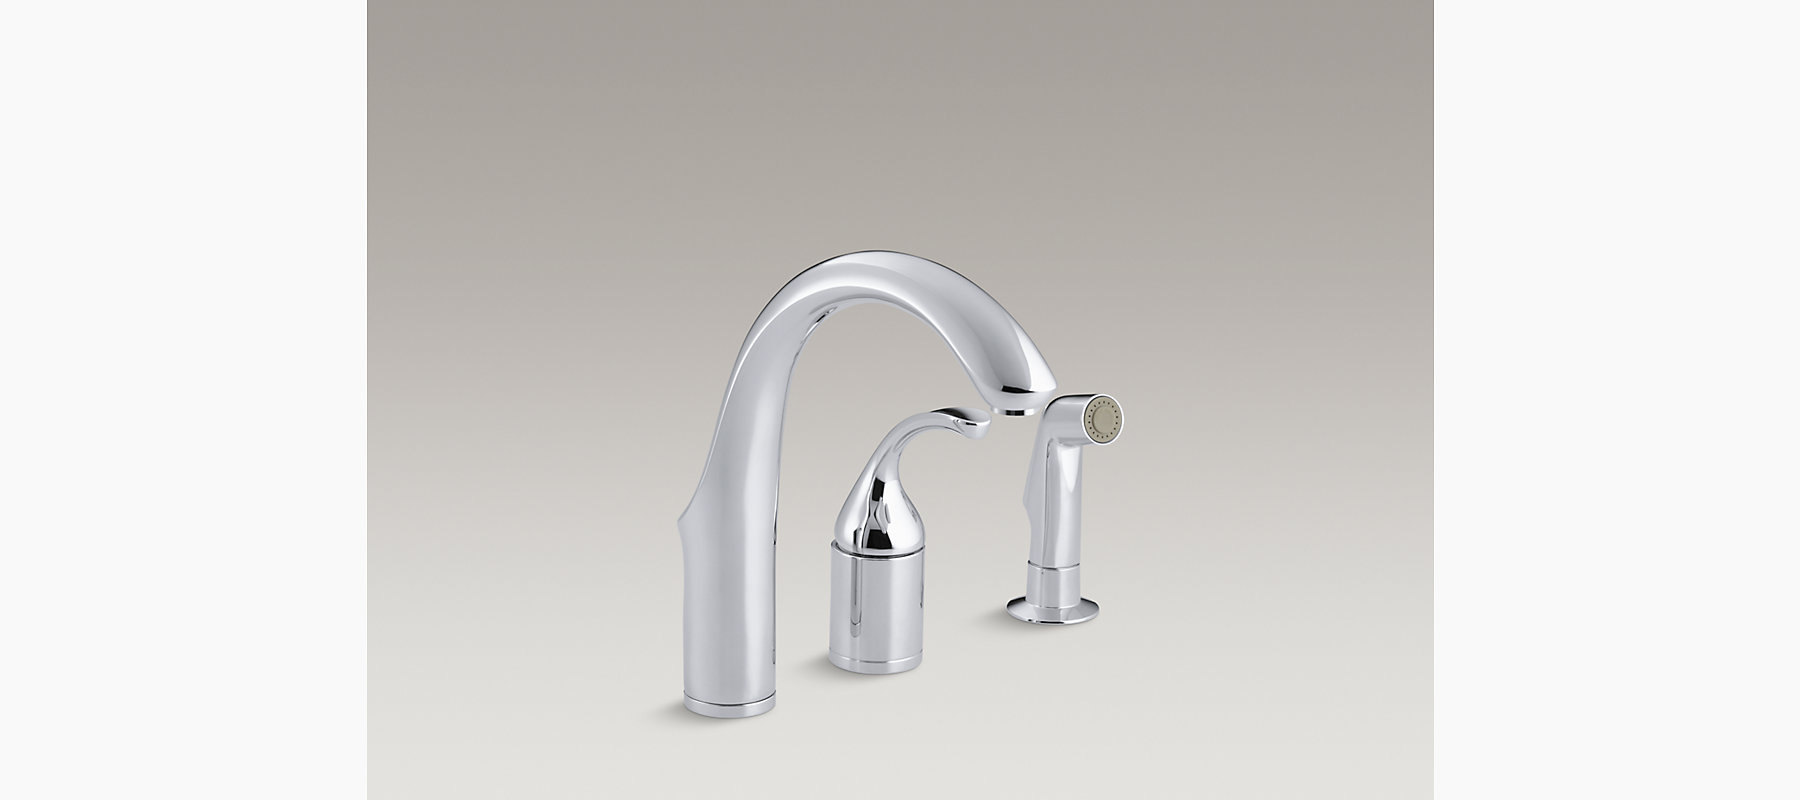 Kohler forte single handle bathroom faucet - Discontinued